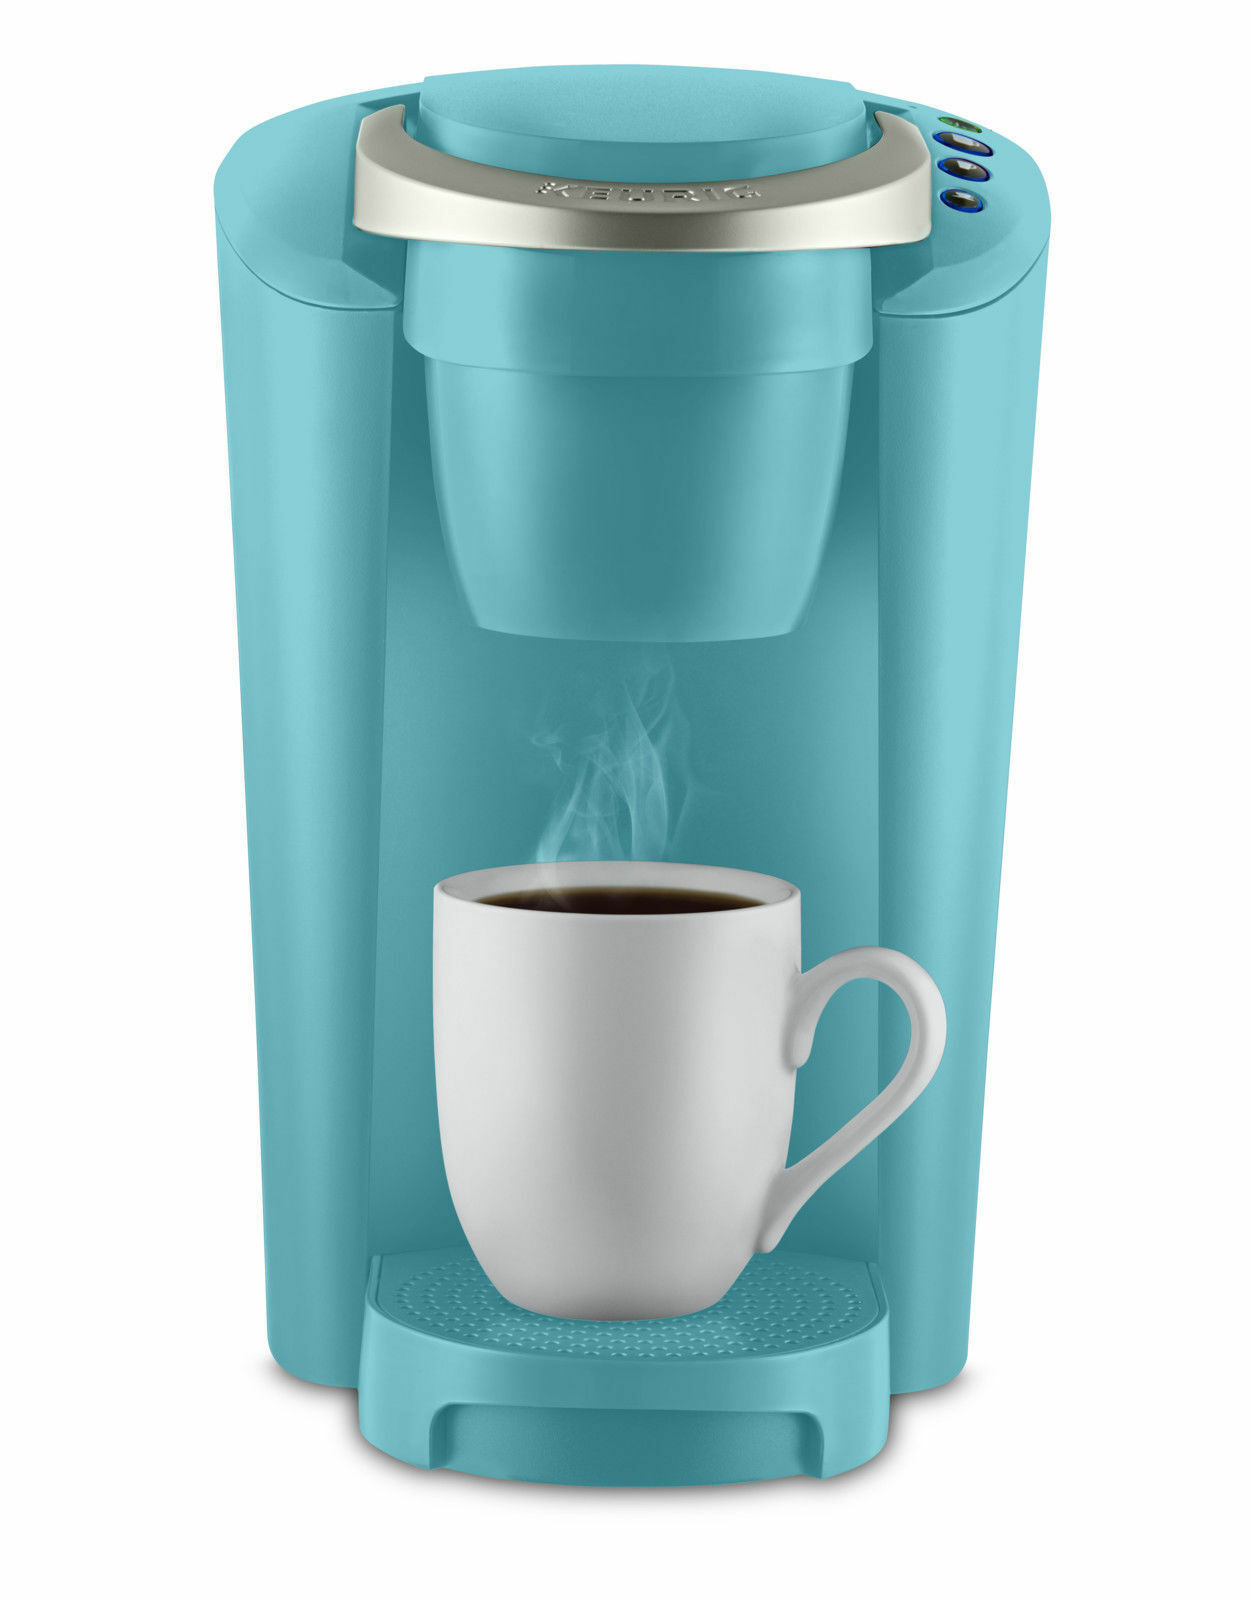 Keurig K-COMPACT Single Serve Coffee Maker-Turquoise